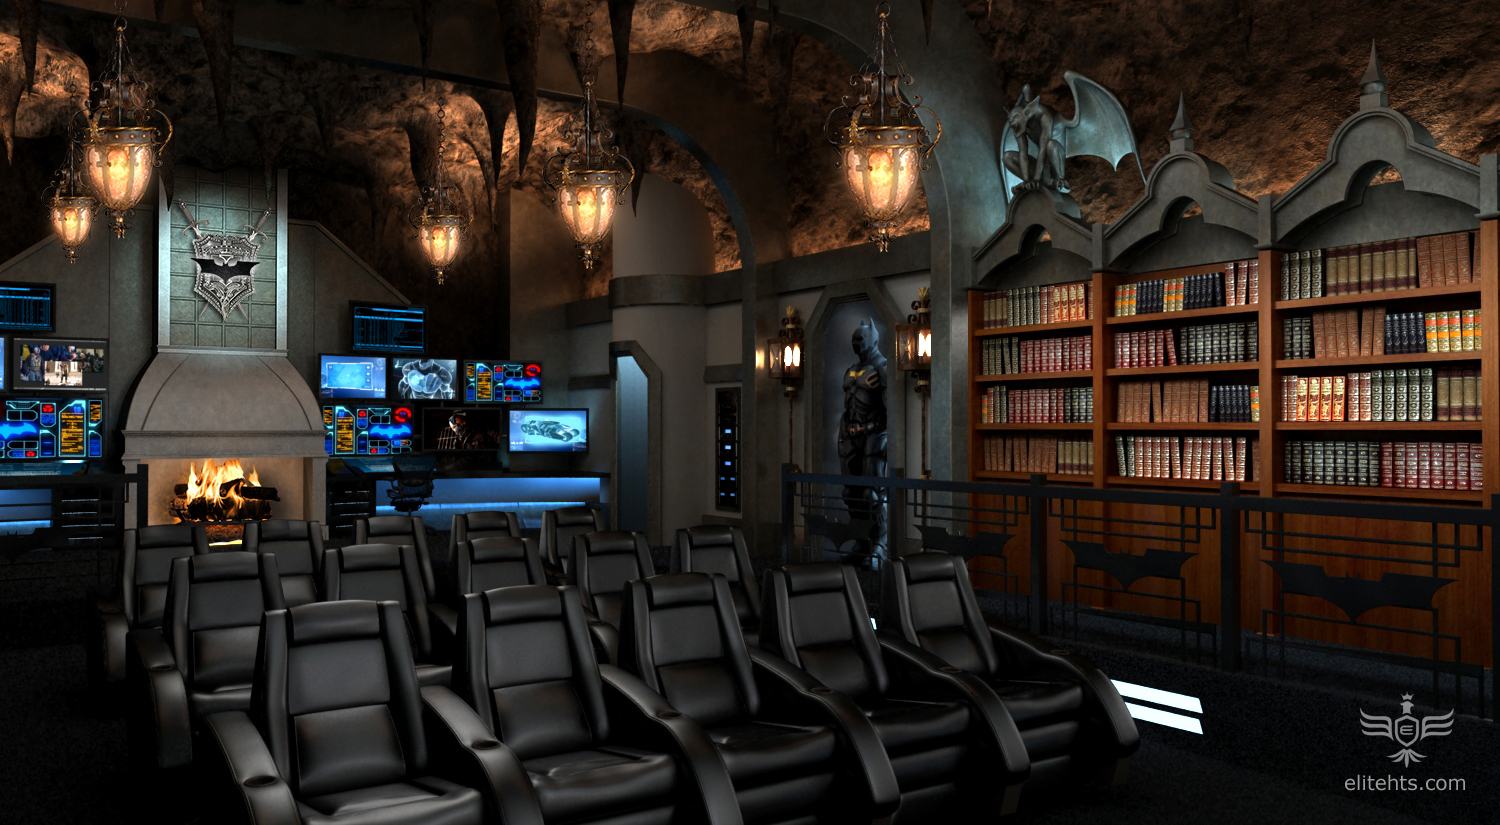 Dark Knight Theme Theater Concept. Home Theater Seating Designs   Elite Home Theater Seating